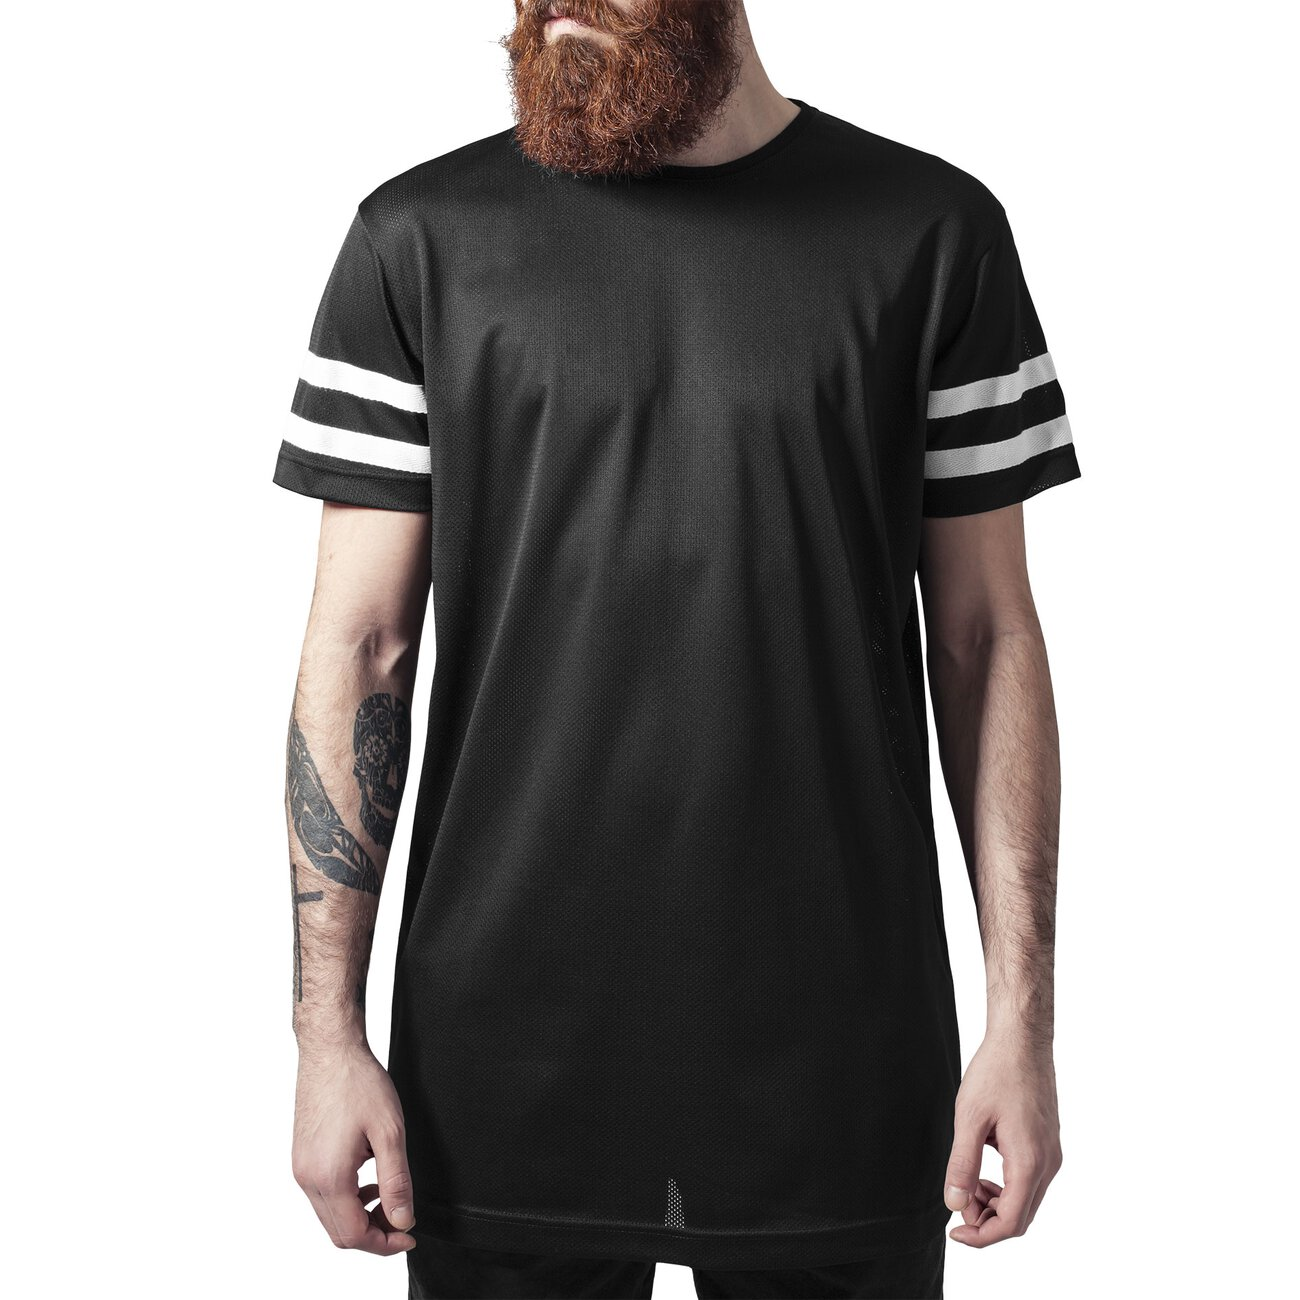 urban classics t shirt herren netz stripe mesh kurzarm. Black Bedroom Furniture Sets. Home Design Ideas